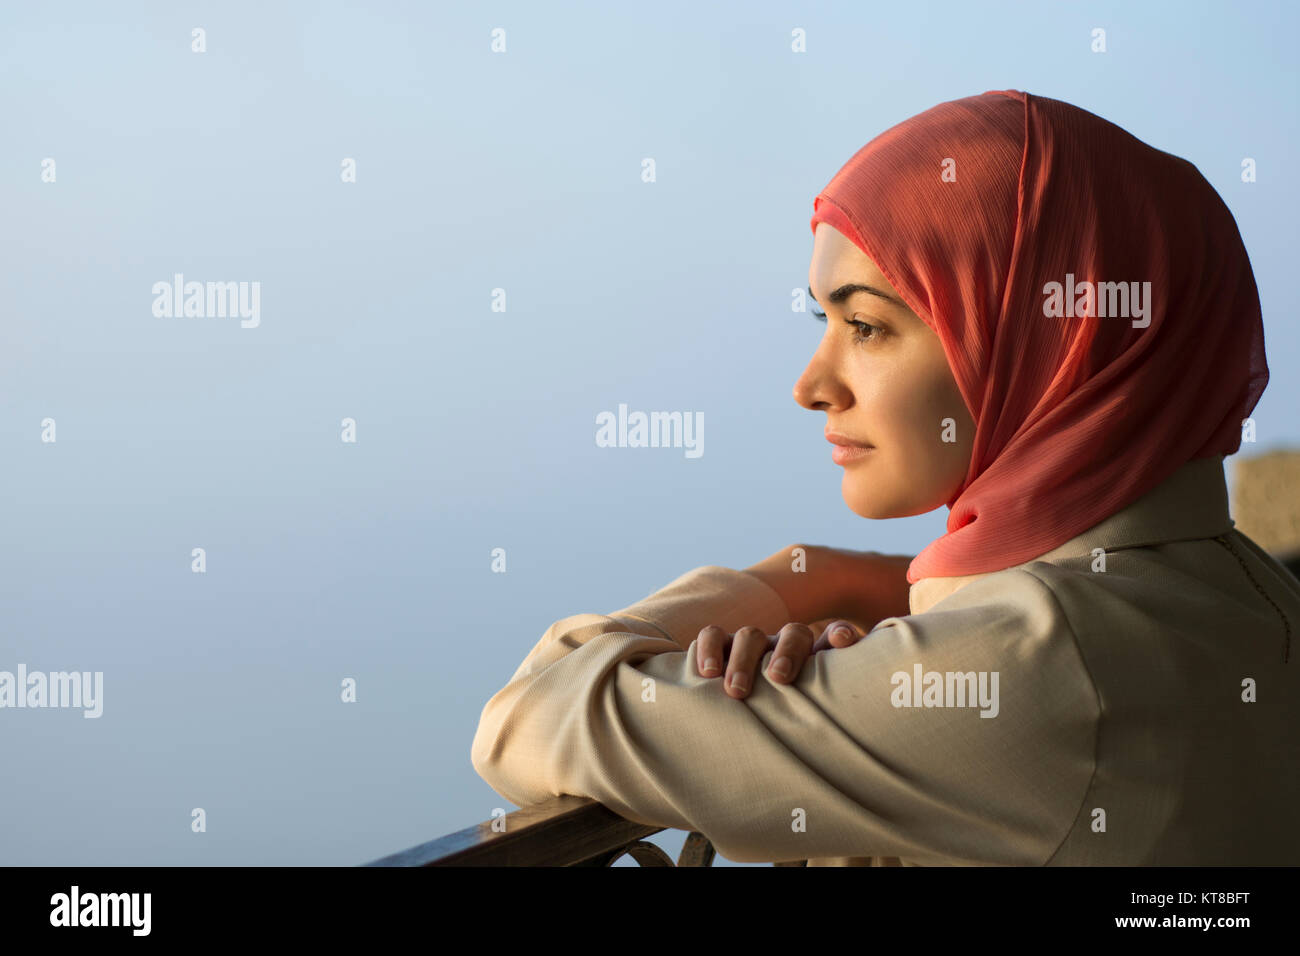 Muslim woman wearing hijab looking away outdoors - Stock Image